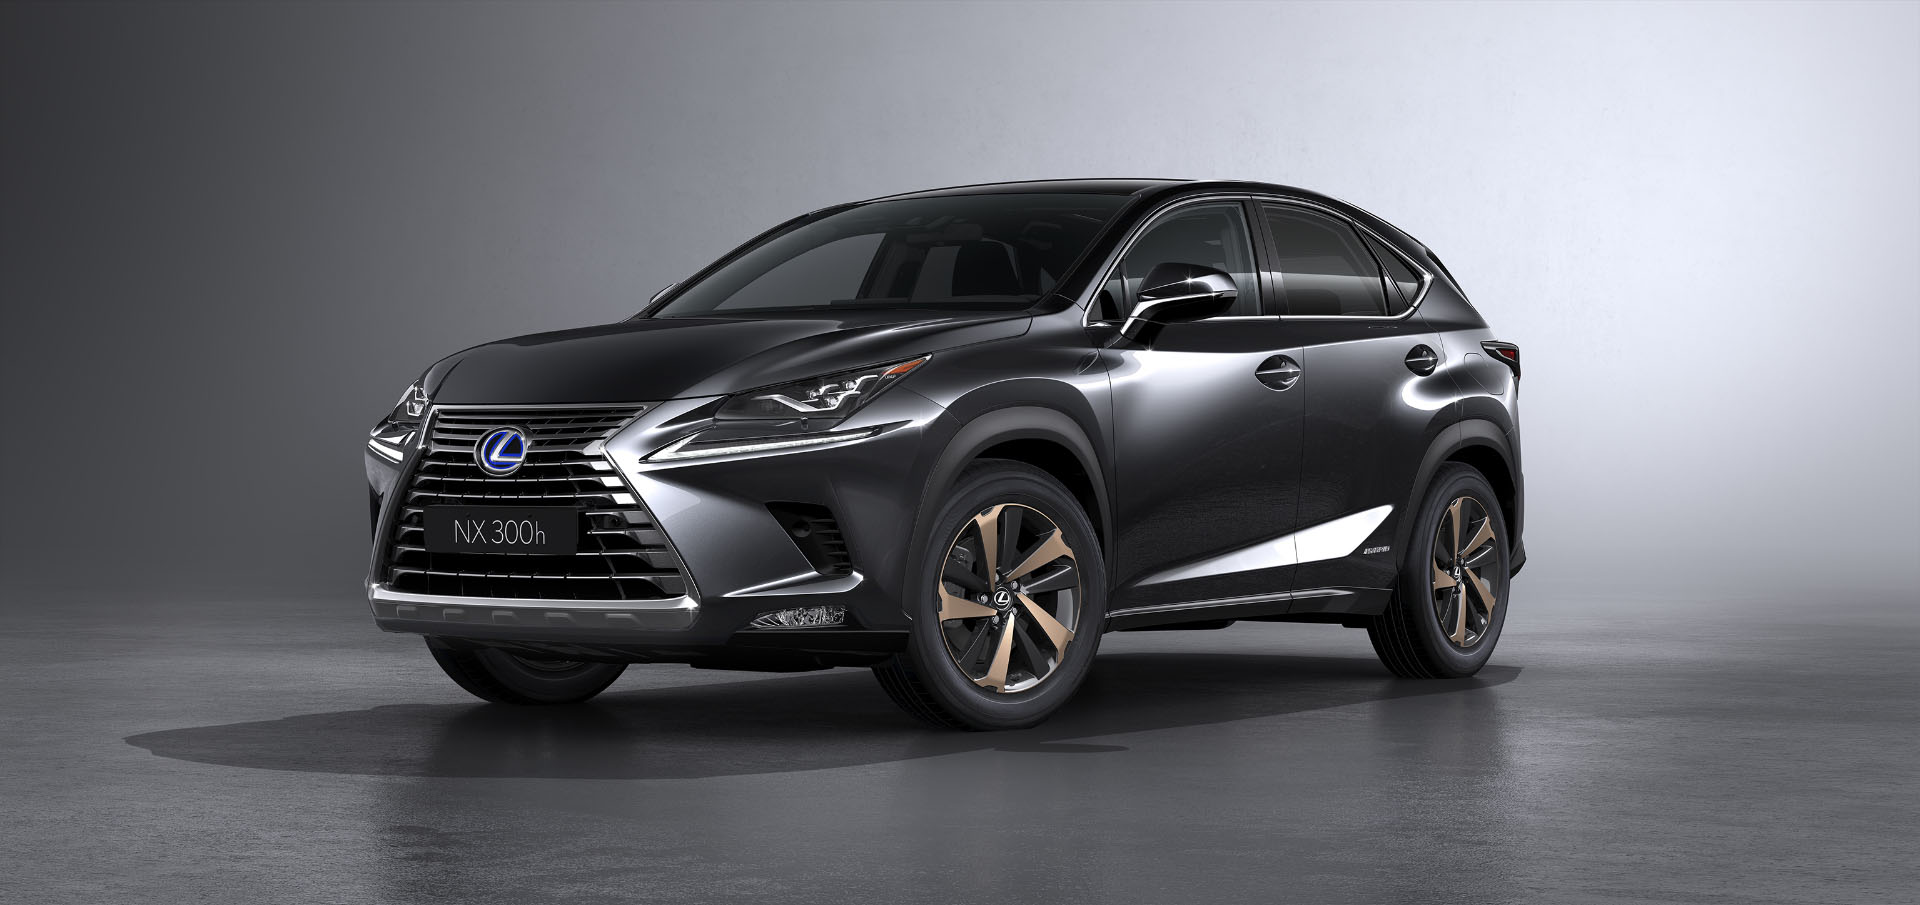 2017 shanghai preview the 2018 lexus nx refreshed to look more like it 39 s larger rx sibling. Black Bedroom Furniture Sets. Home Design Ideas